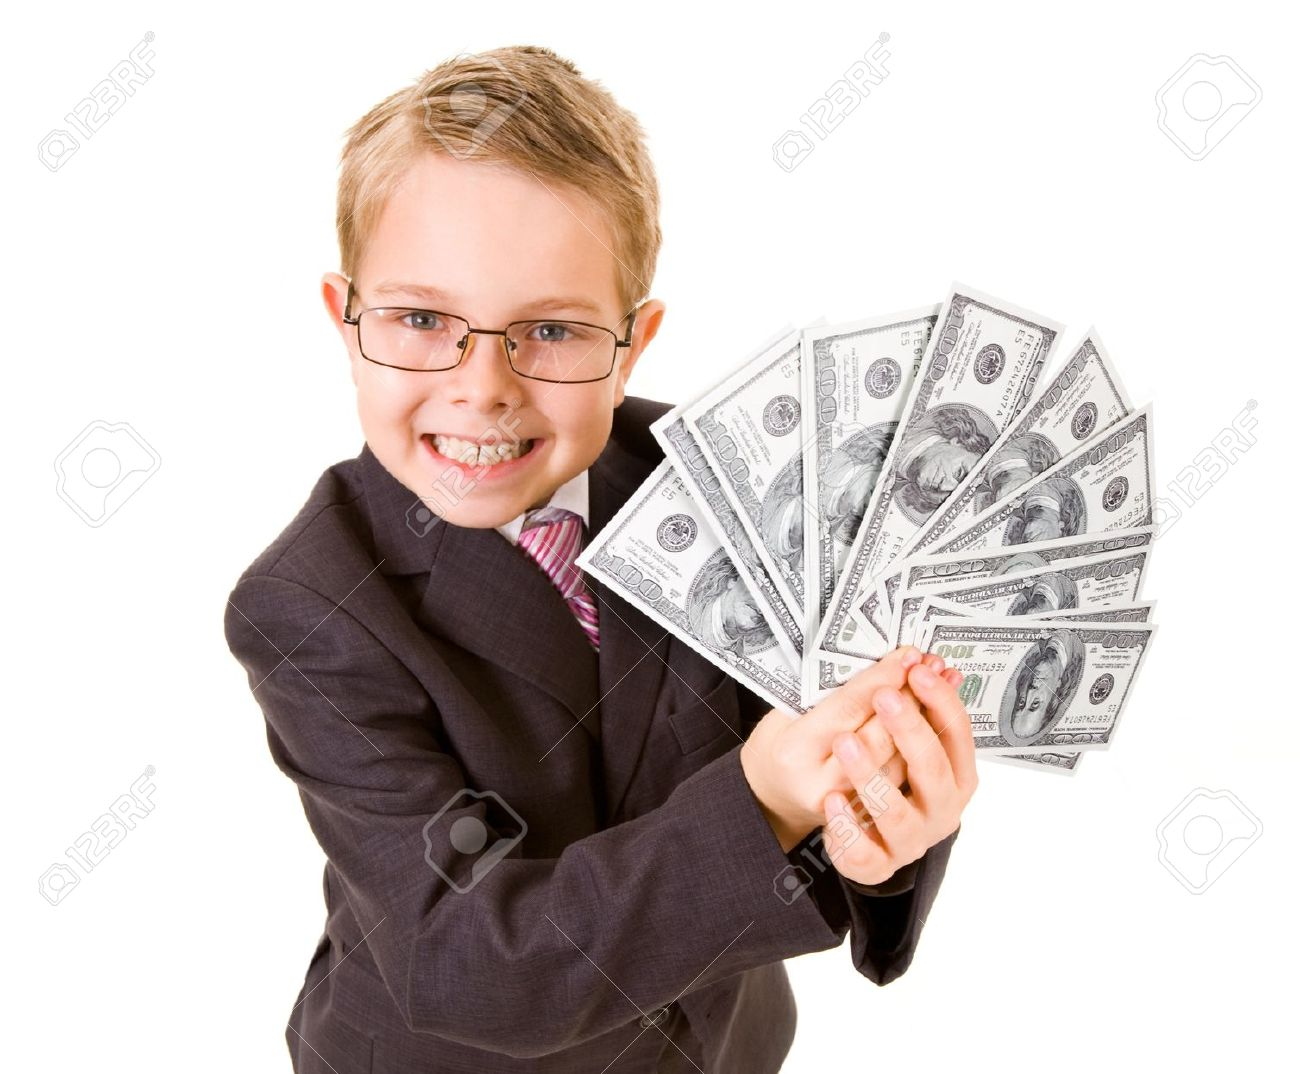 """Image result for Lots of money"""""""